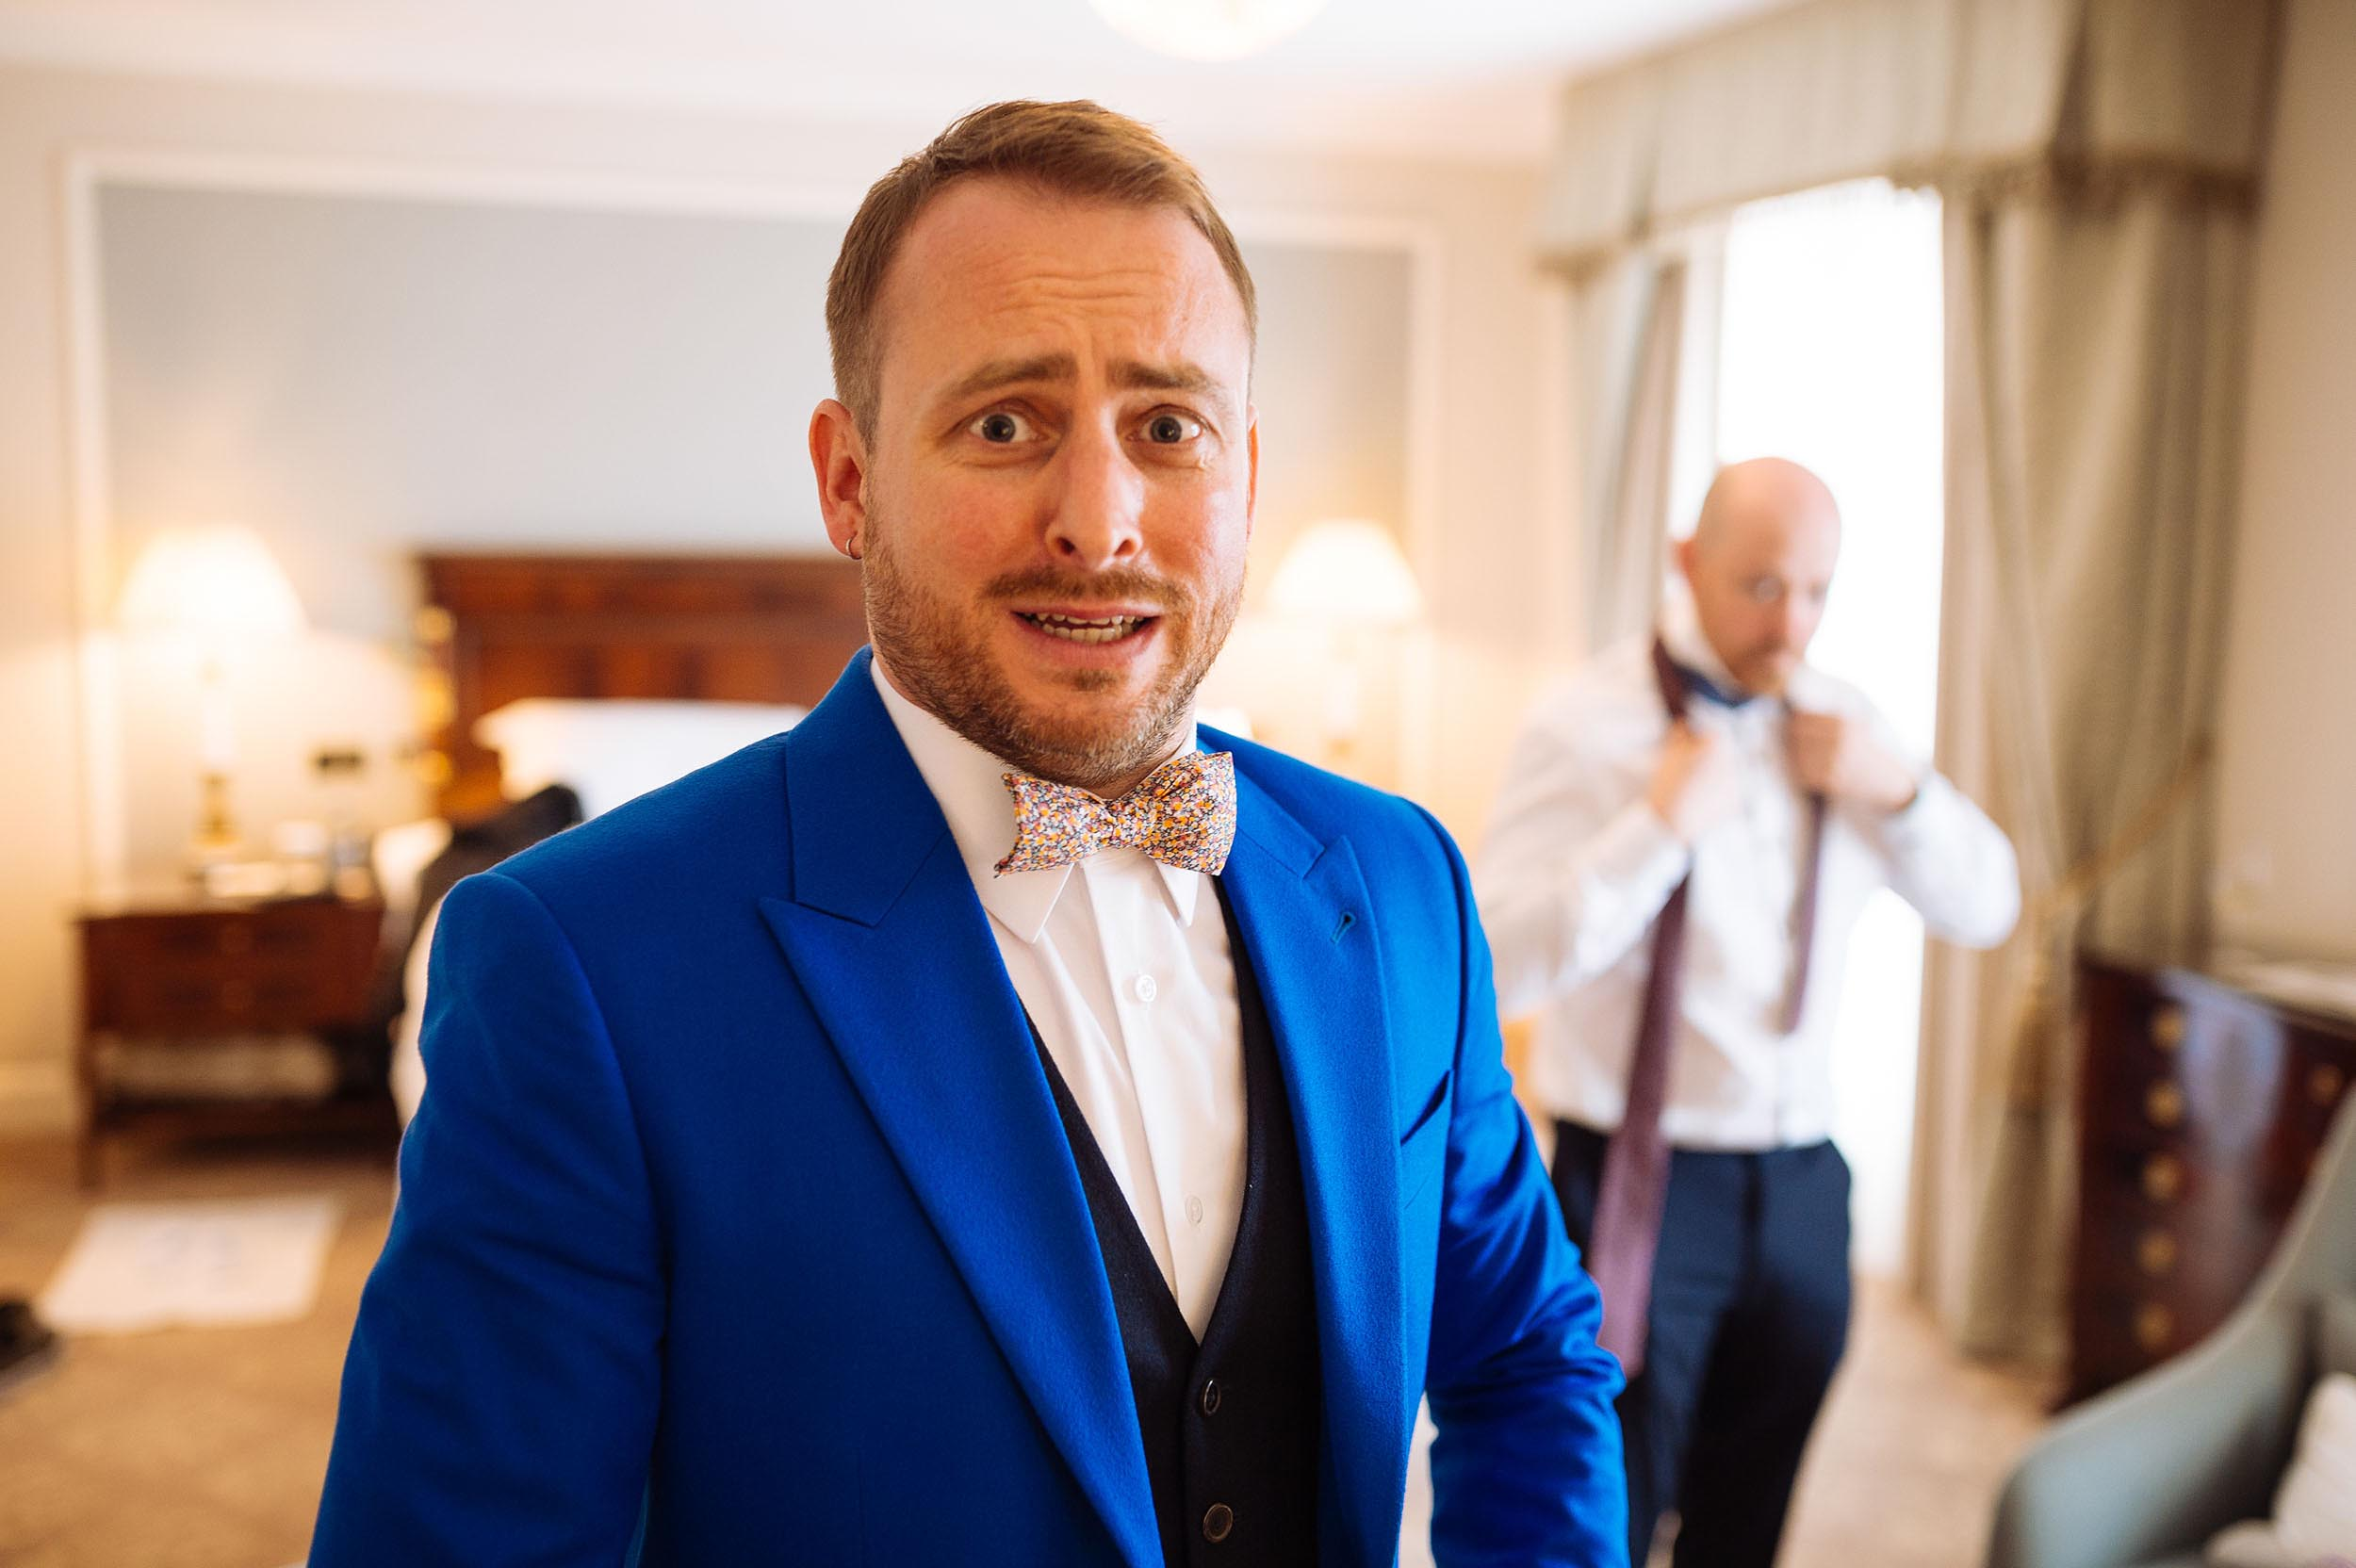 ian-groom-gay-wedding-best-man-dressed-shelbourne-hotel-dublin-03